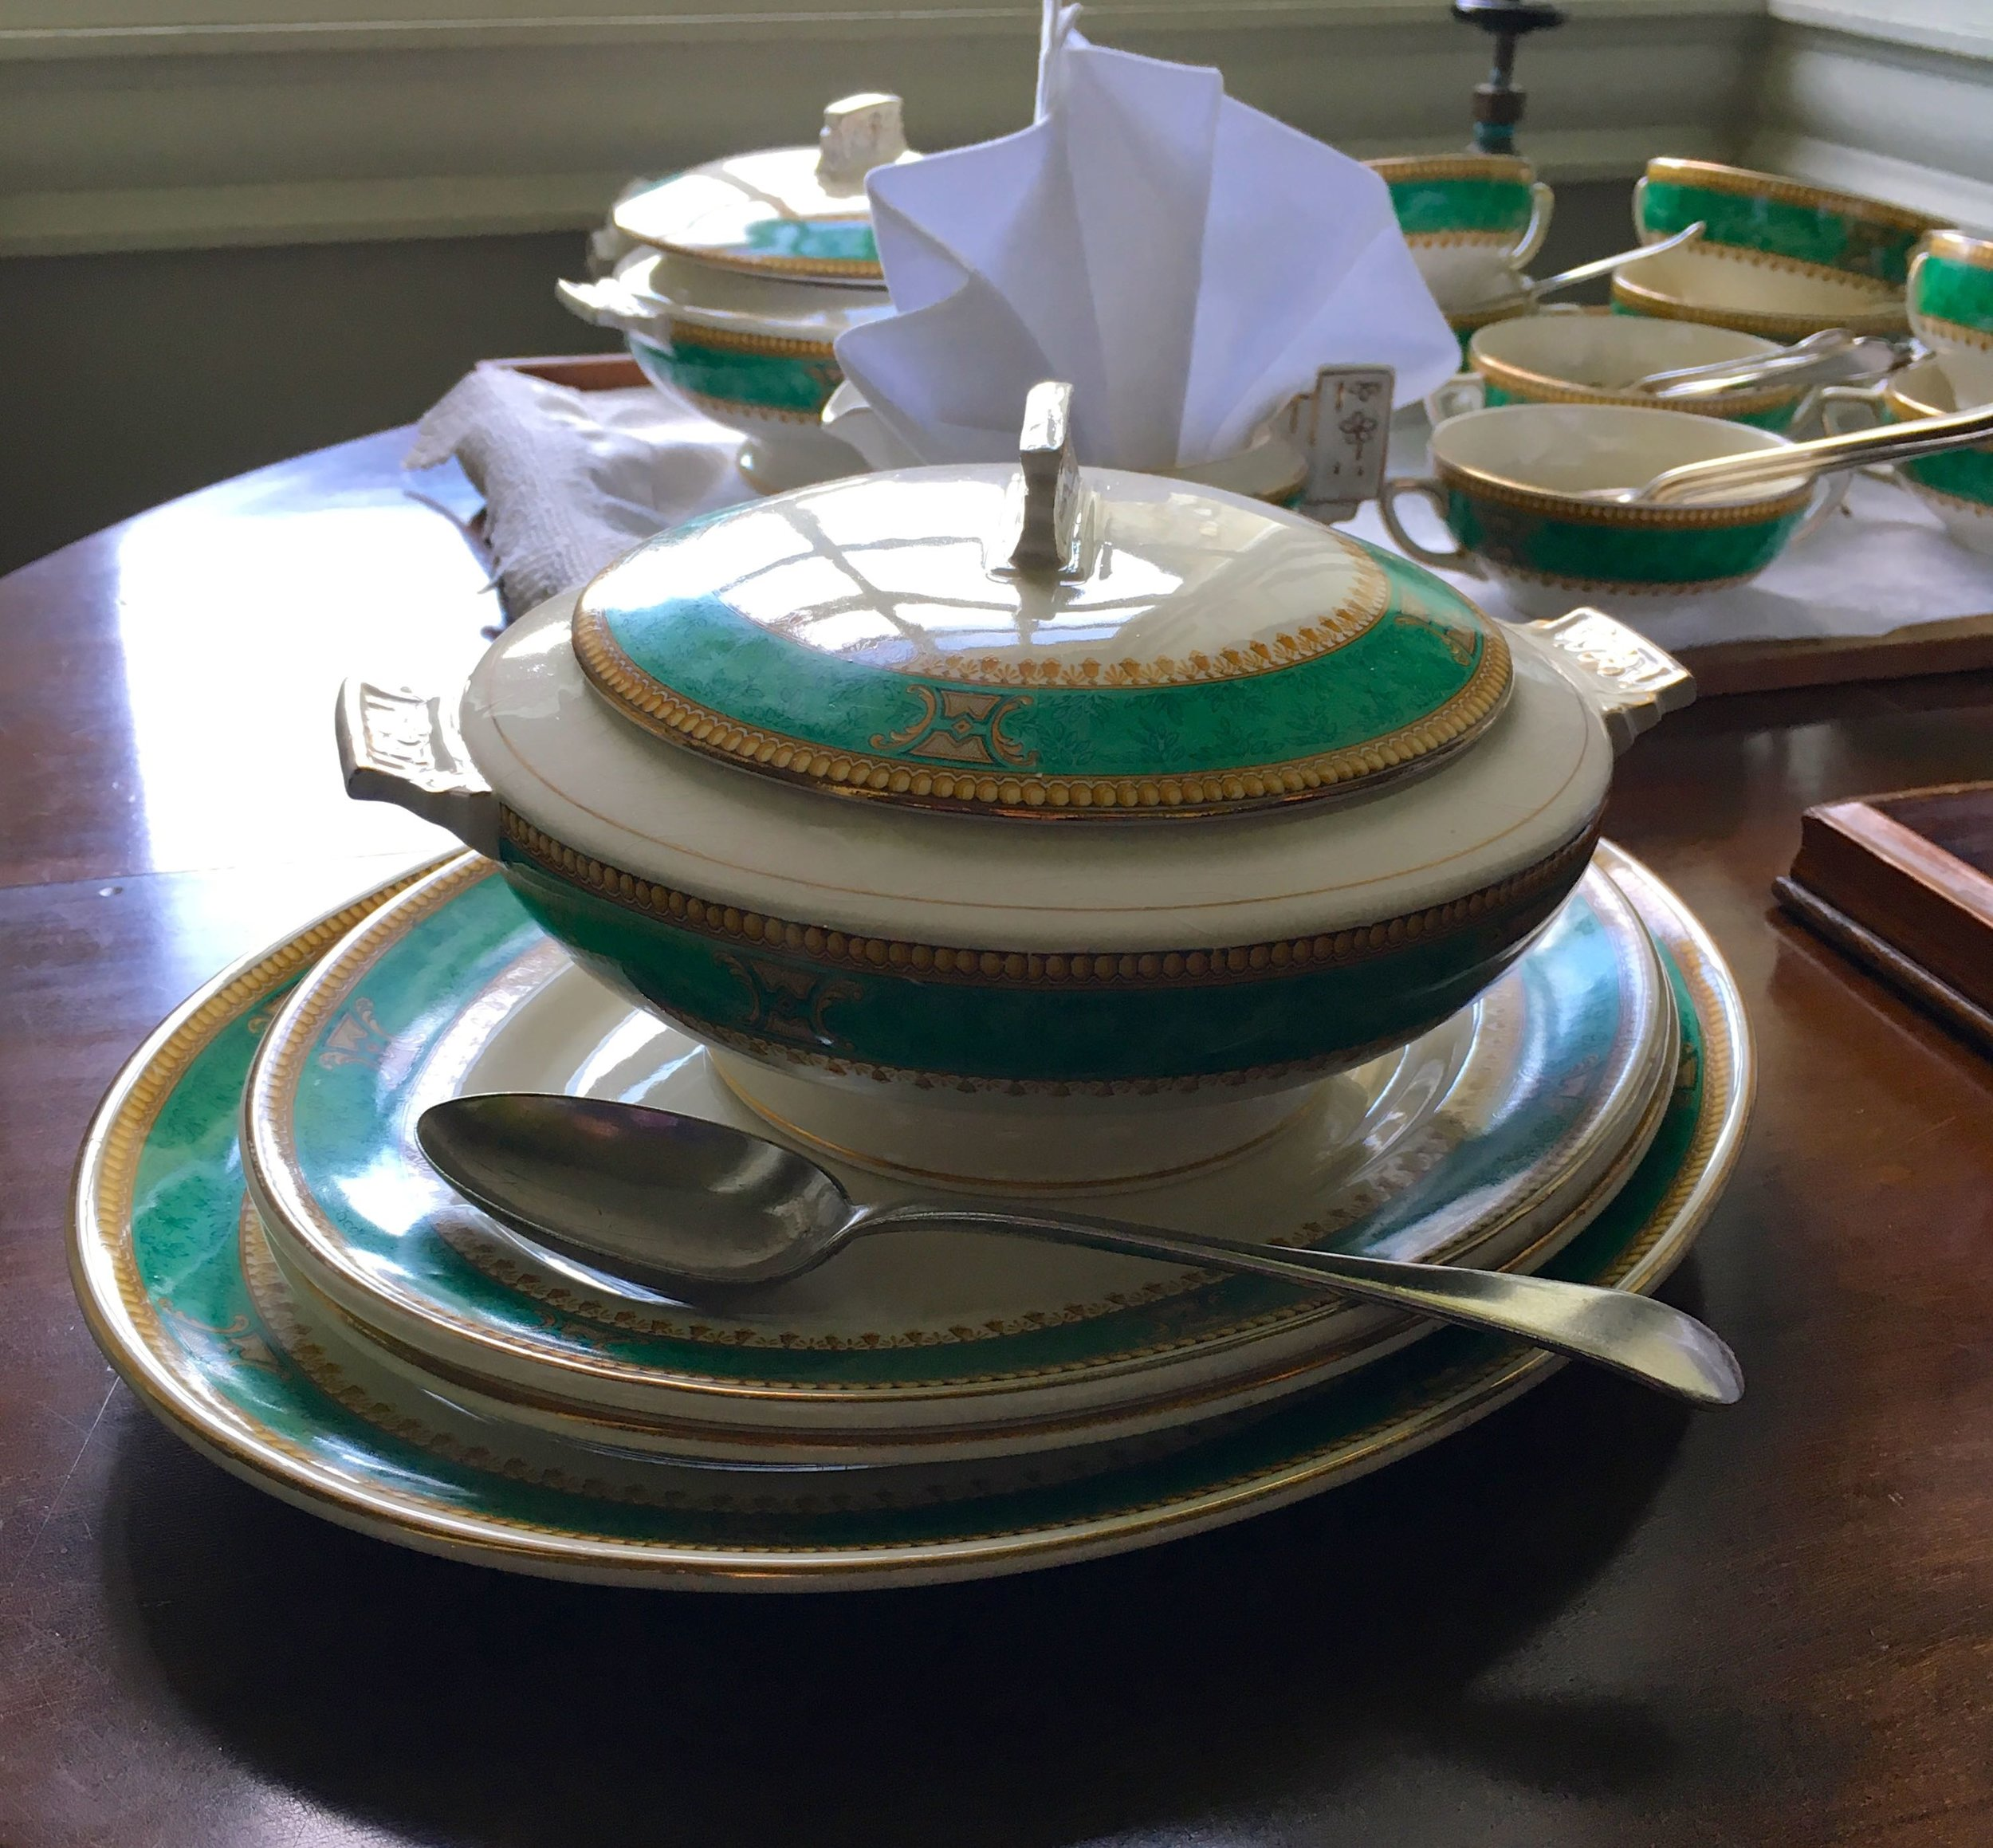 Crockery on the dining table at Mottisfont